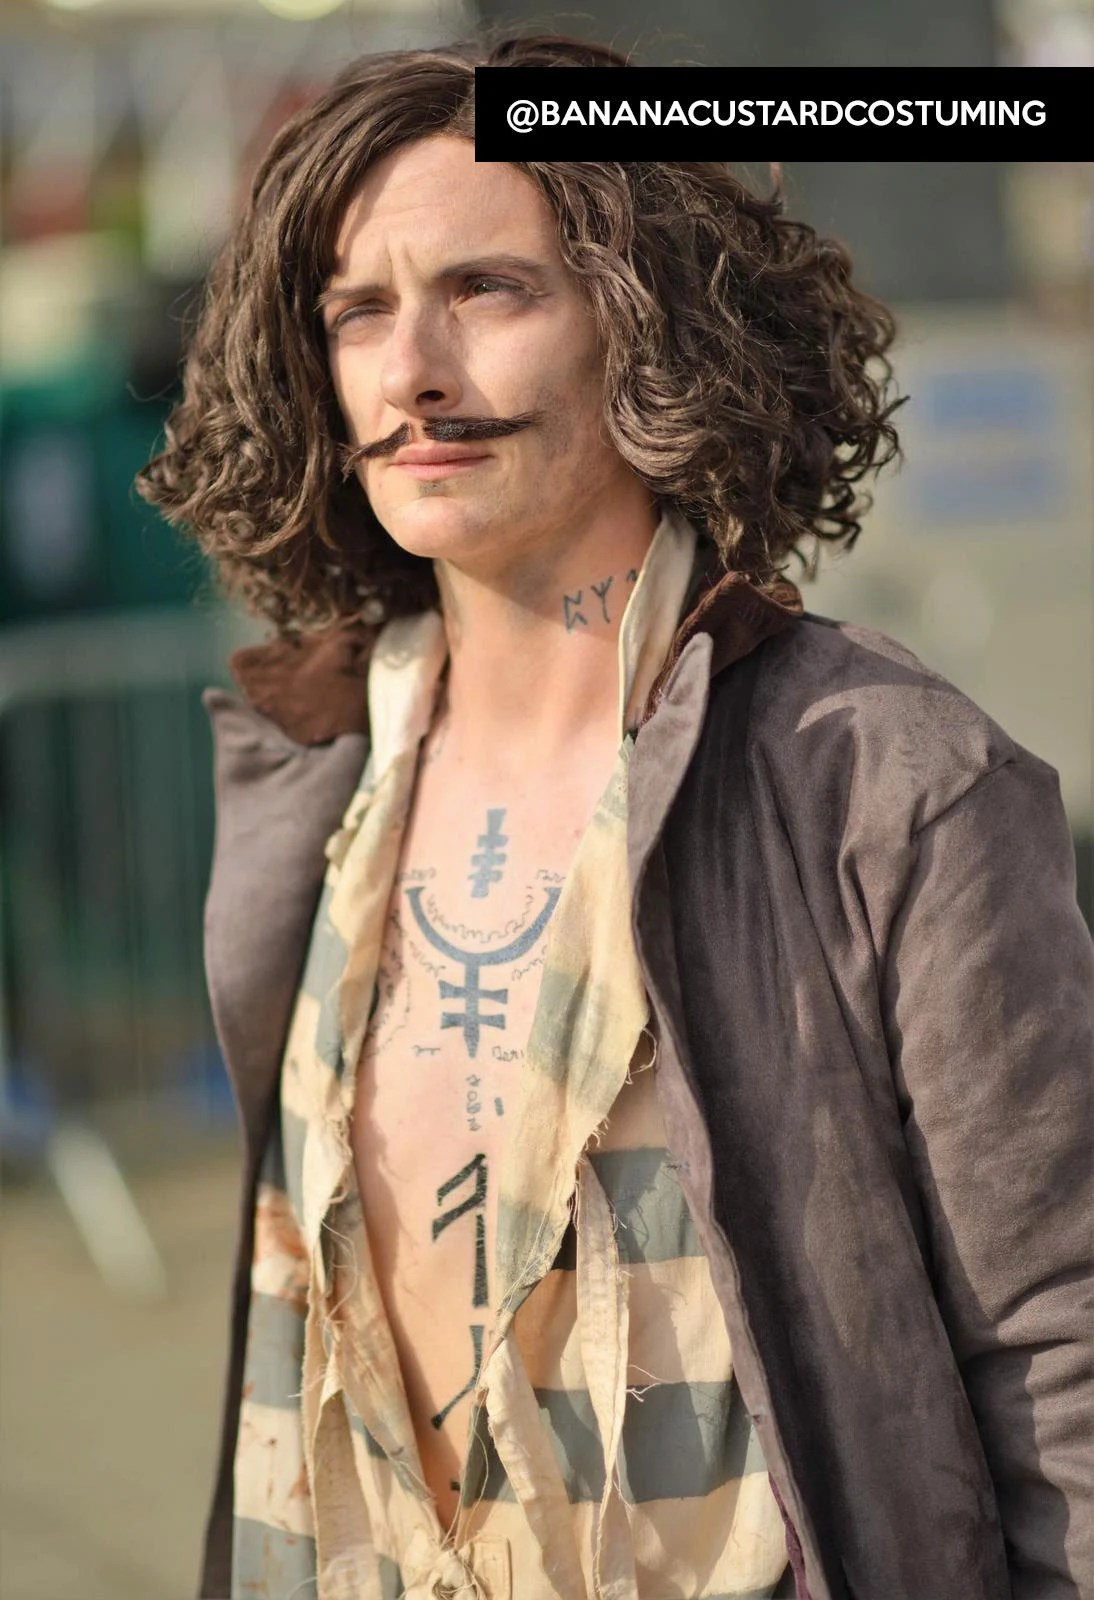 Sirius Black Tattoos : sirius, black, tattoos, Sirius, Black, Temporary, Tattoos, Harry, Potter, Costume